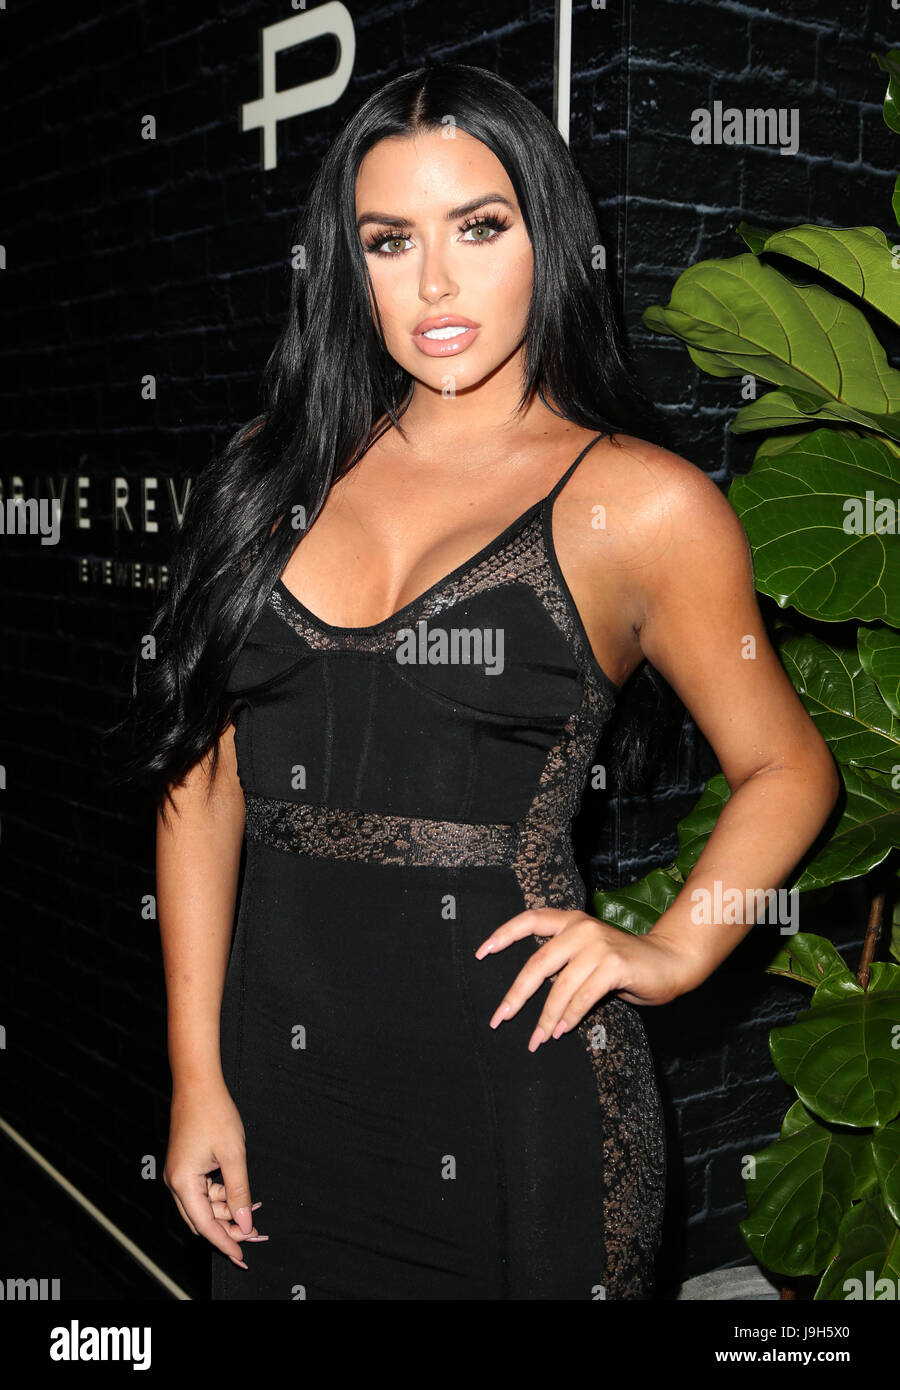 Abigail Ratchford United States nude (29 photo), Pussy, Paparazzi, Feet, cameltoe 2006